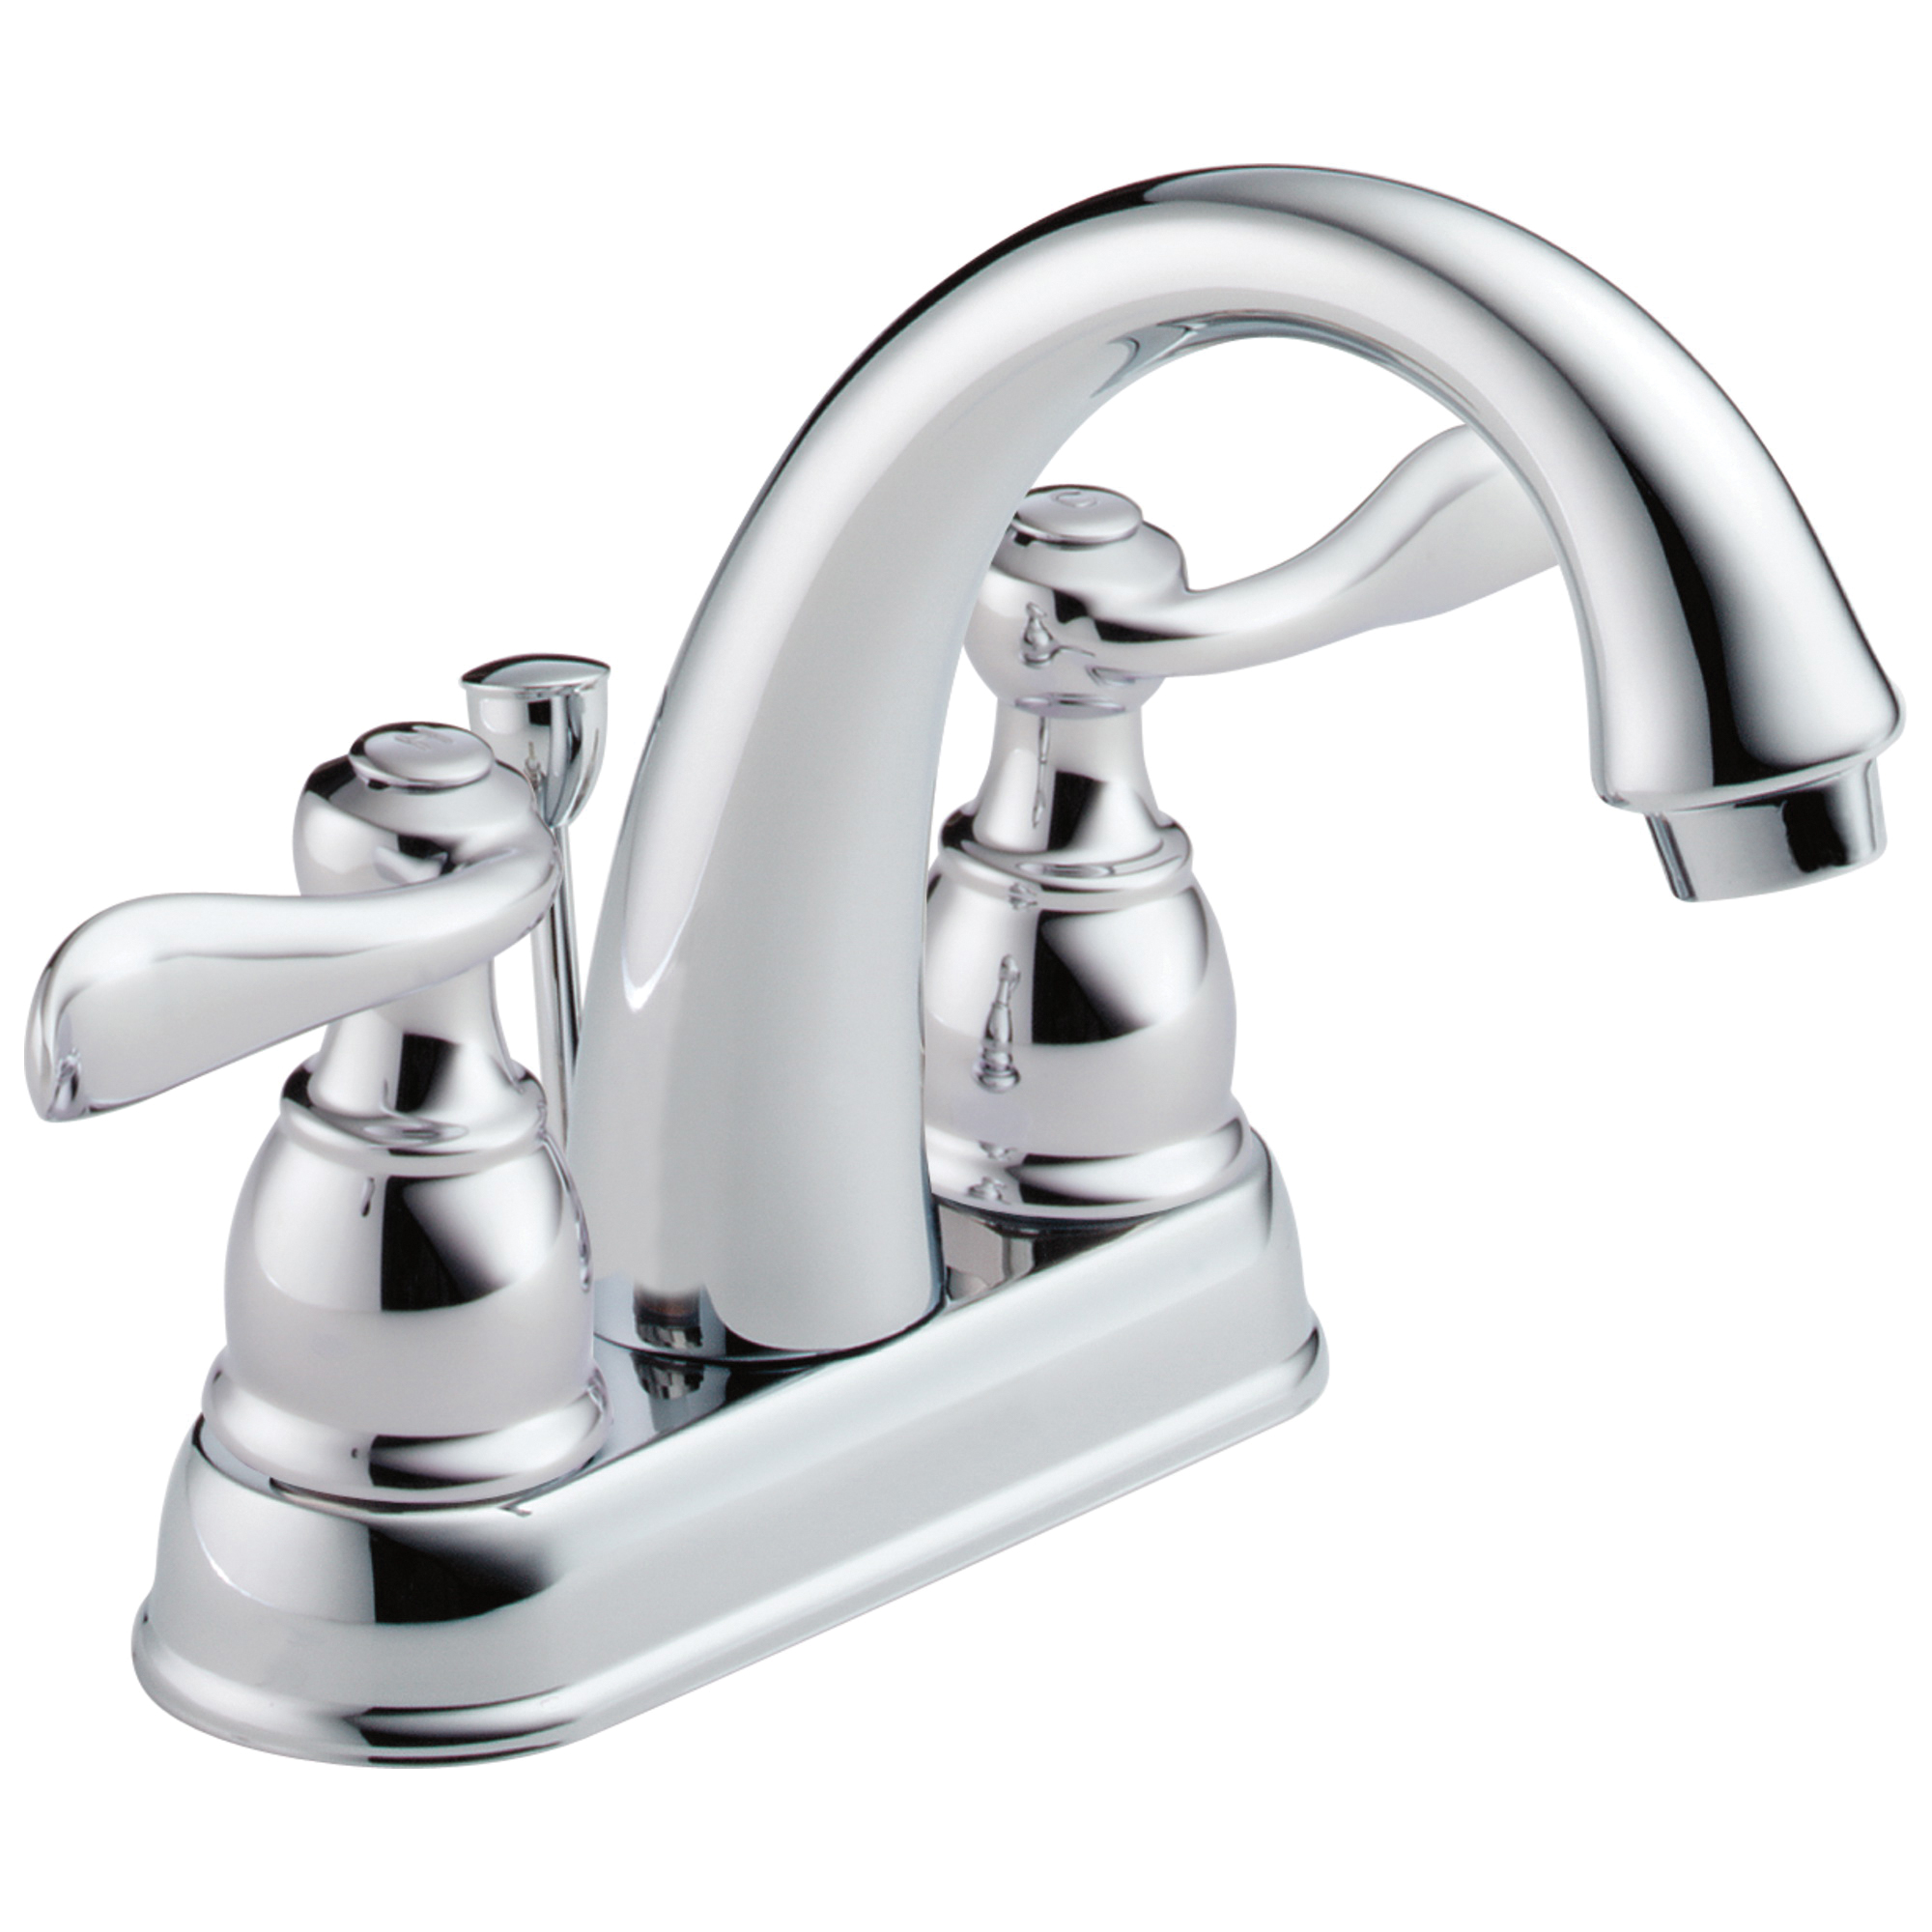 DELTA® B2596LF Centerset Lavatory Faucet, Windemere®, Chrome Plated, 2 Handles, Metal Pop-Up Drain, 1.2 gpm